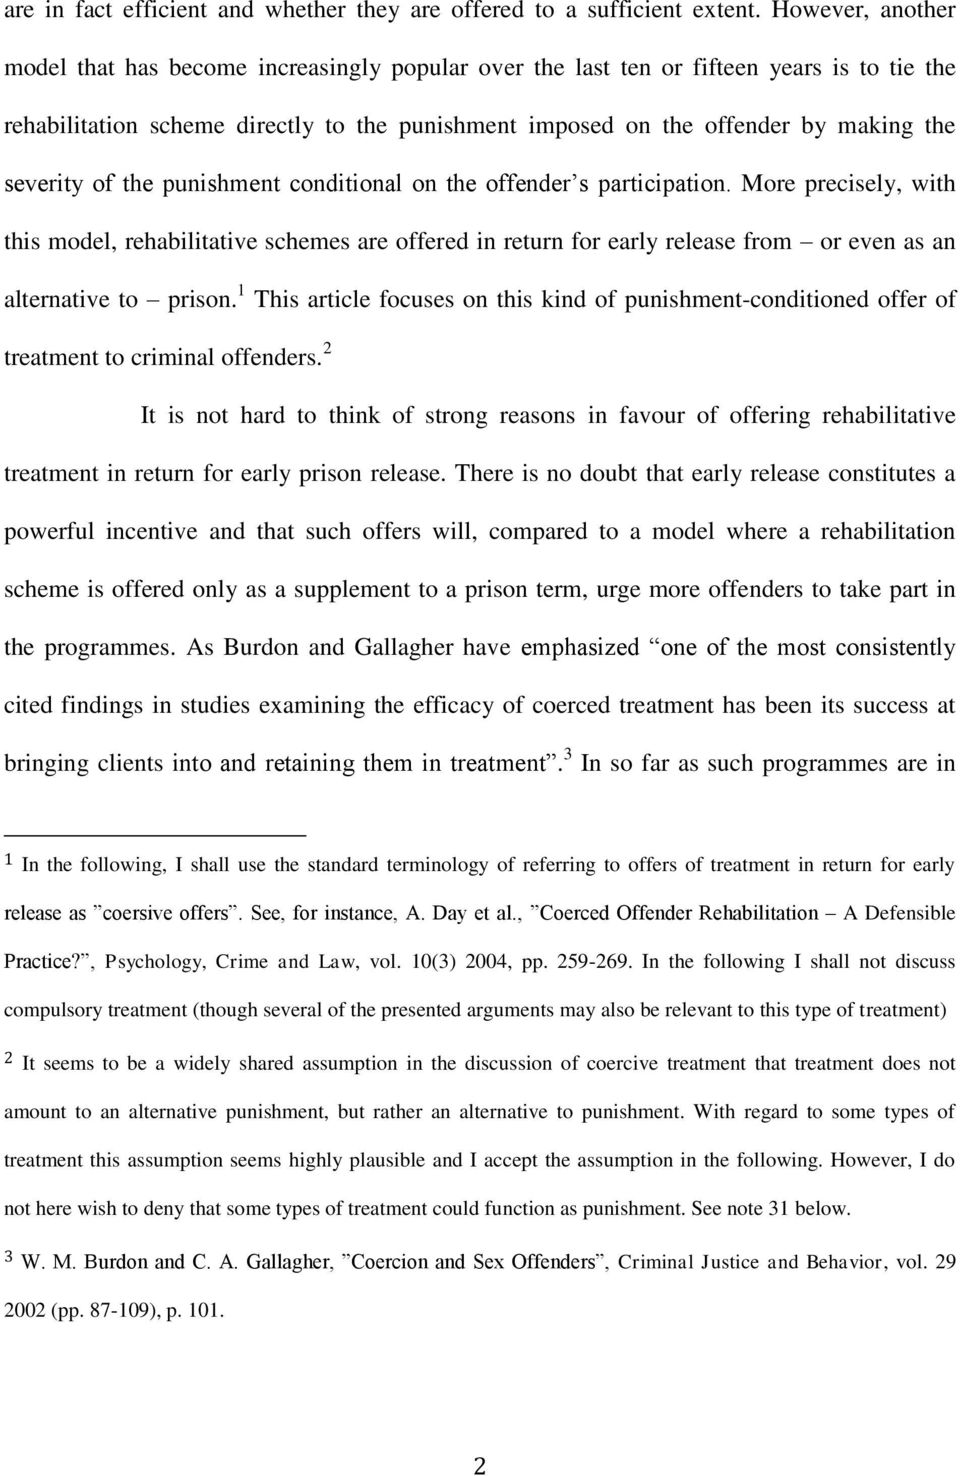 severity of the punishment conditional on the offender s participation.